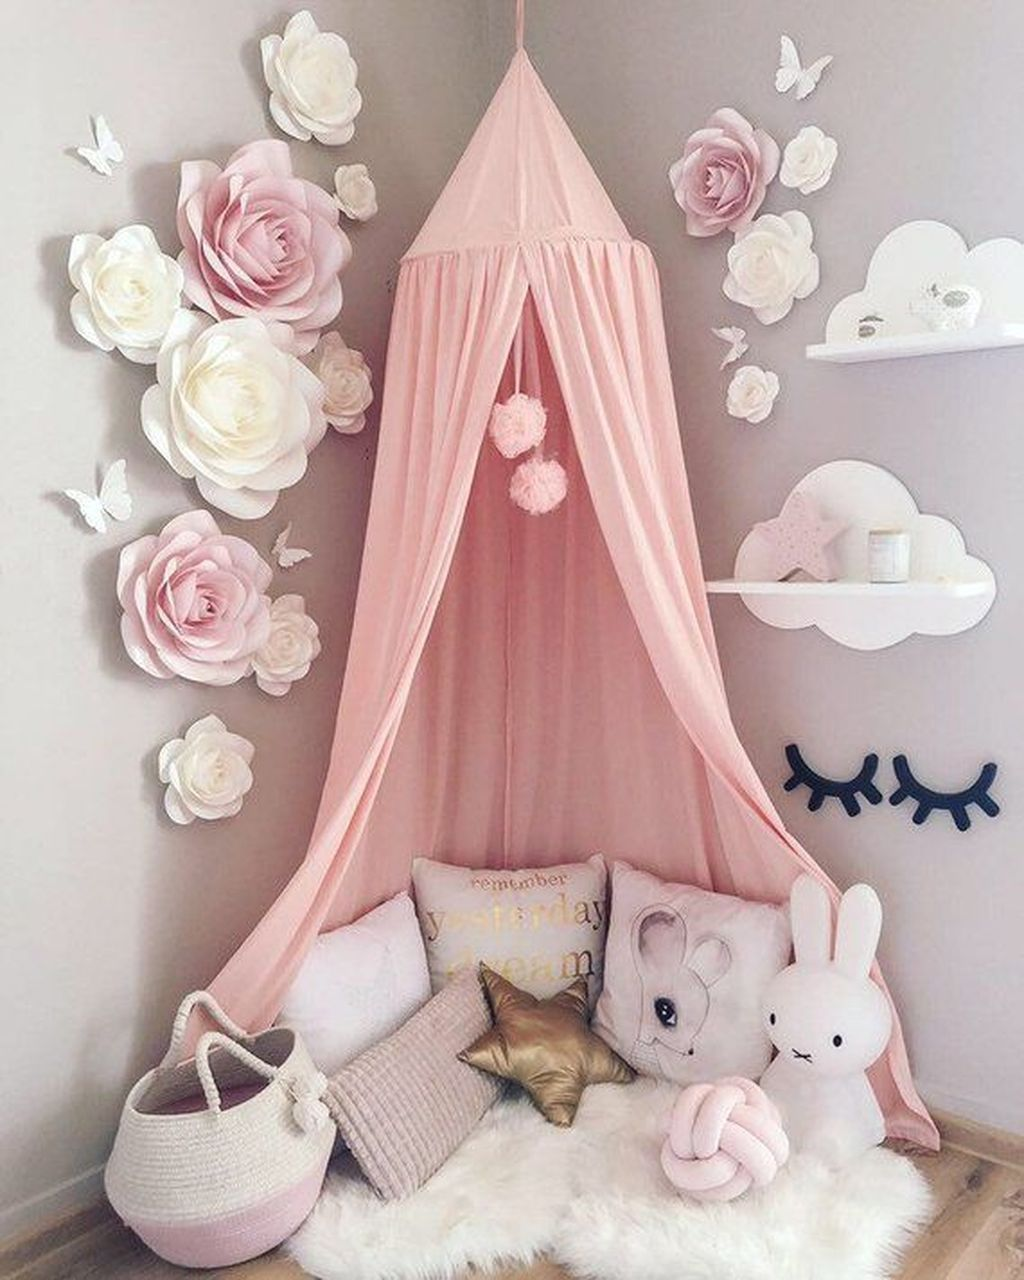 37 Affordable Kids Room Design Ideas To Inspire Today – https://pickndecor.com/interior